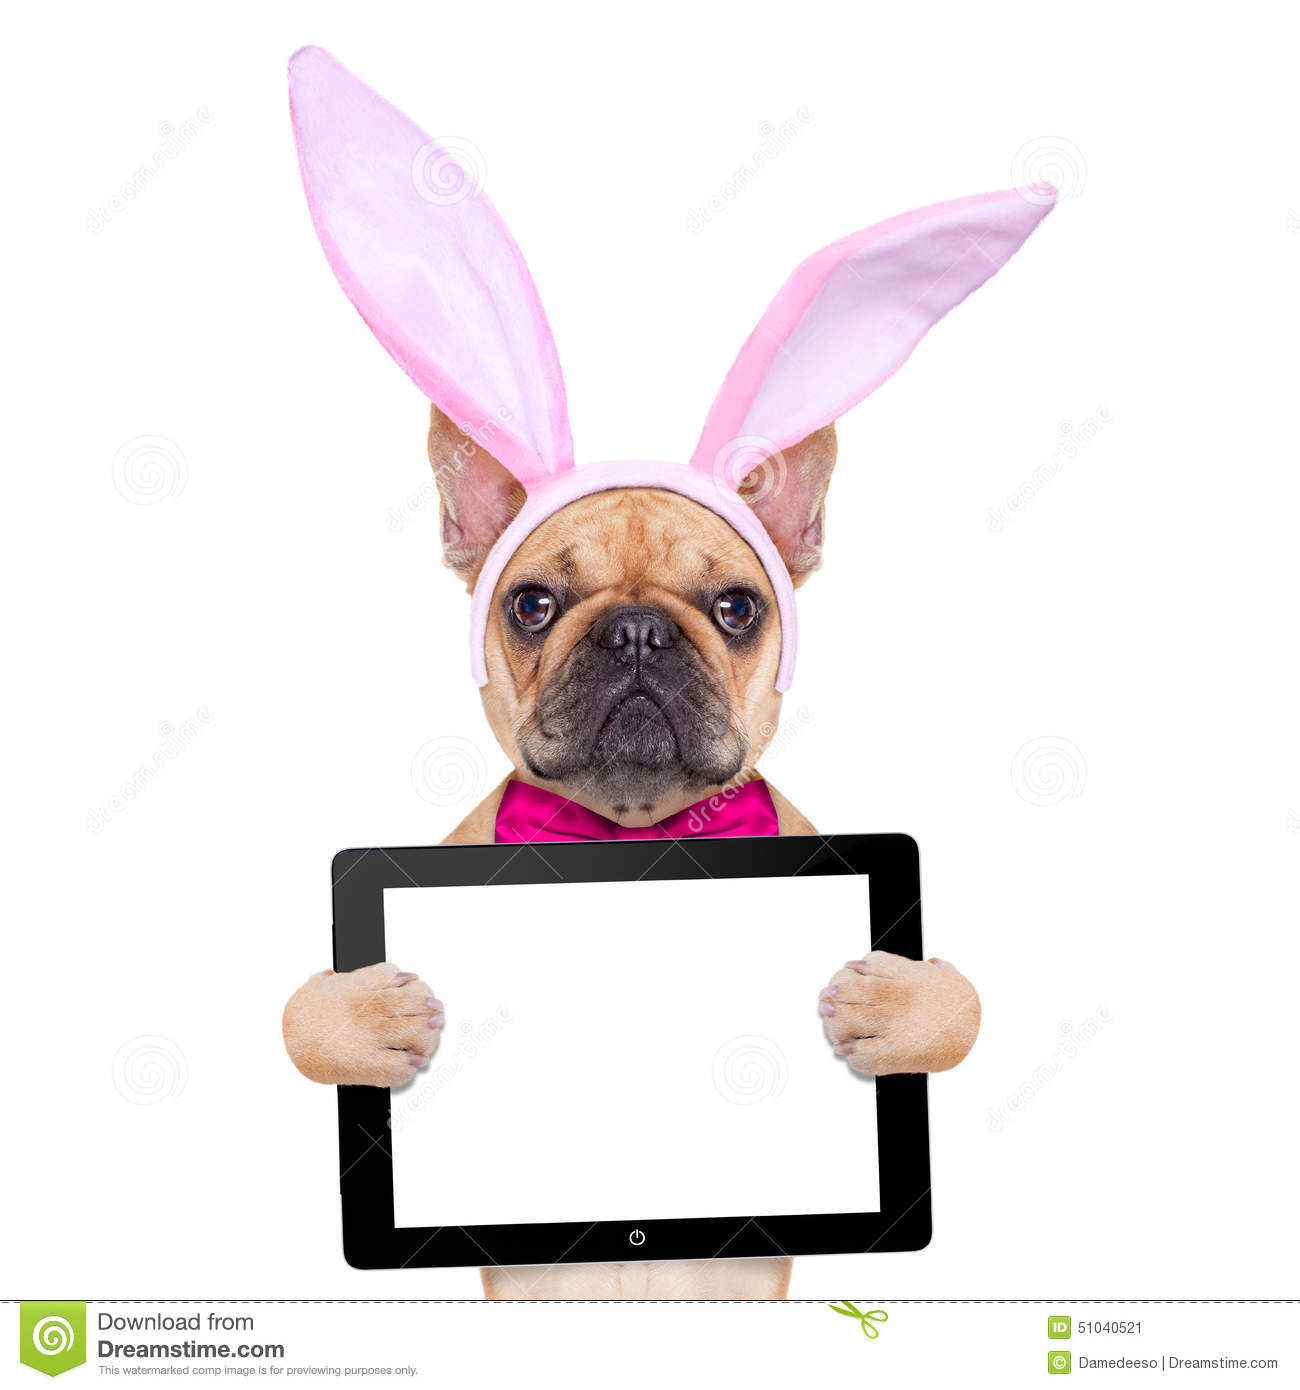 Bunny easter ears dog stock image image of blank carnival 51040521 download bunny easter ears dog stock image image of blank carnival 51040521 voltagebd Choice Image